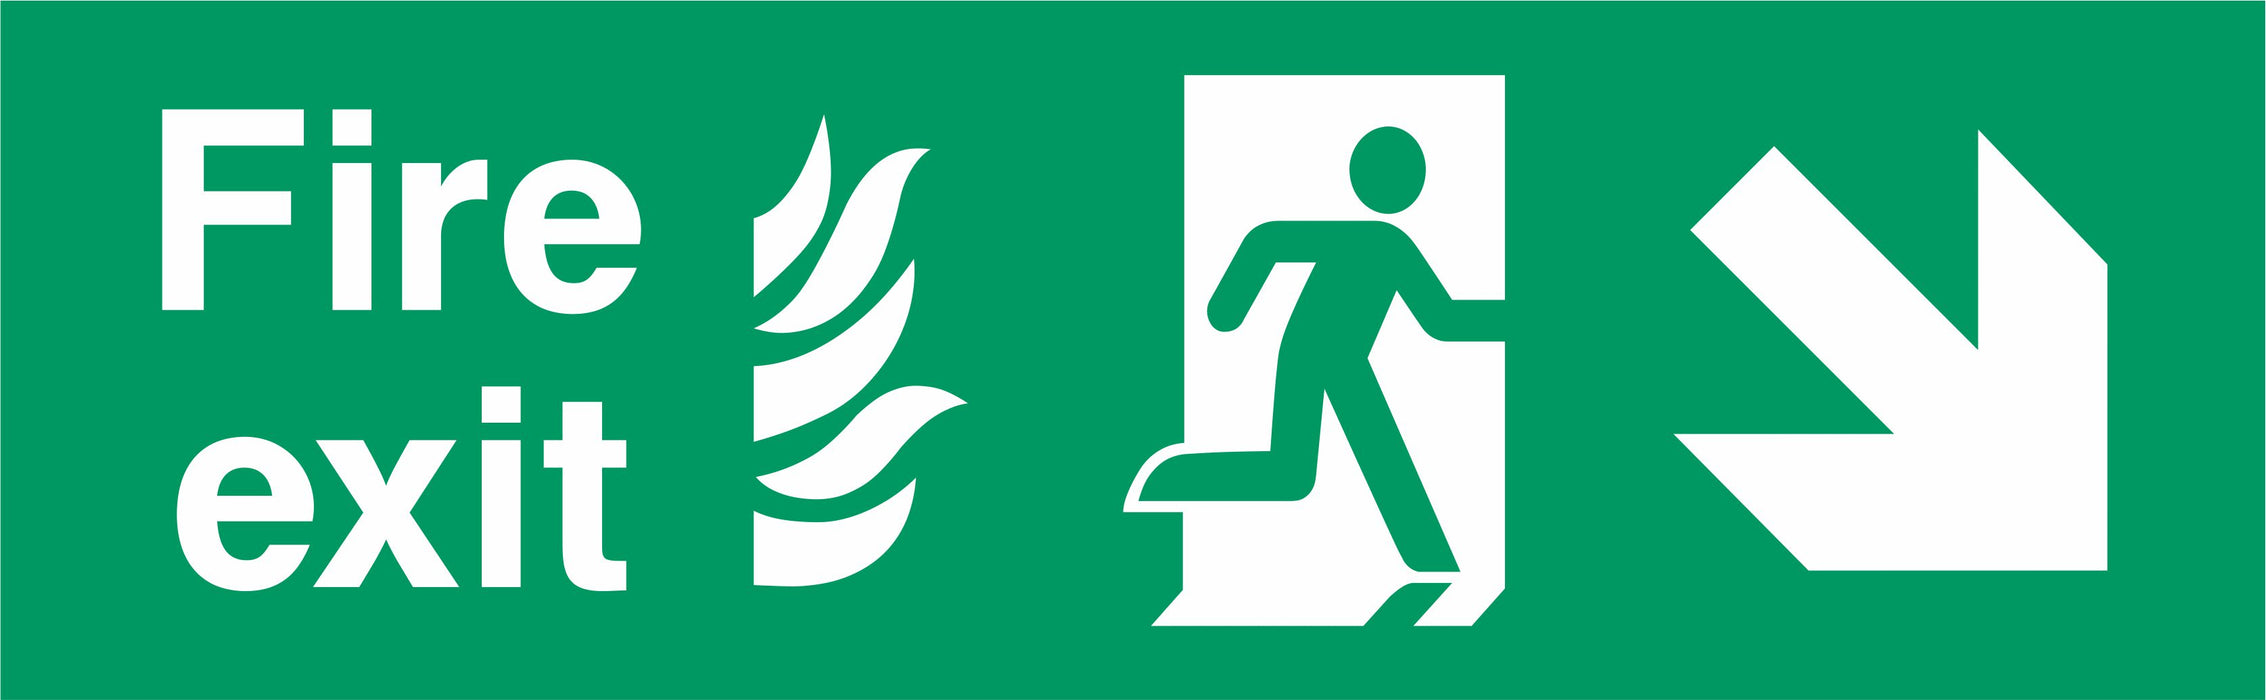 Fire Exit - Running Man Right - Right Down Arrow - NHS COMPLIANT